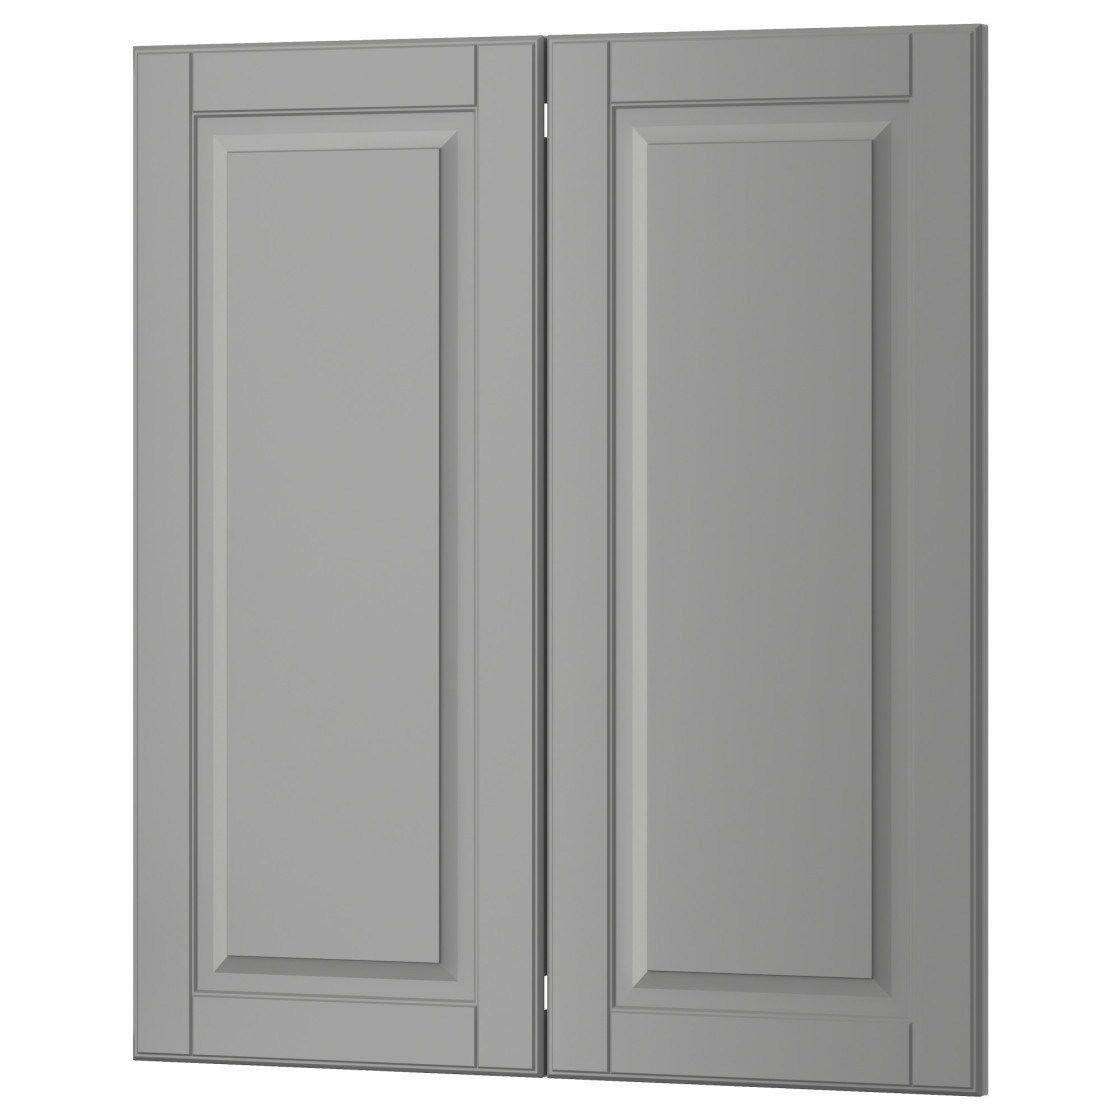 Lowes Cabinet Sale: Cabinets Cabinet Doors Kitchen Doors Kitchen Cabinets Sale